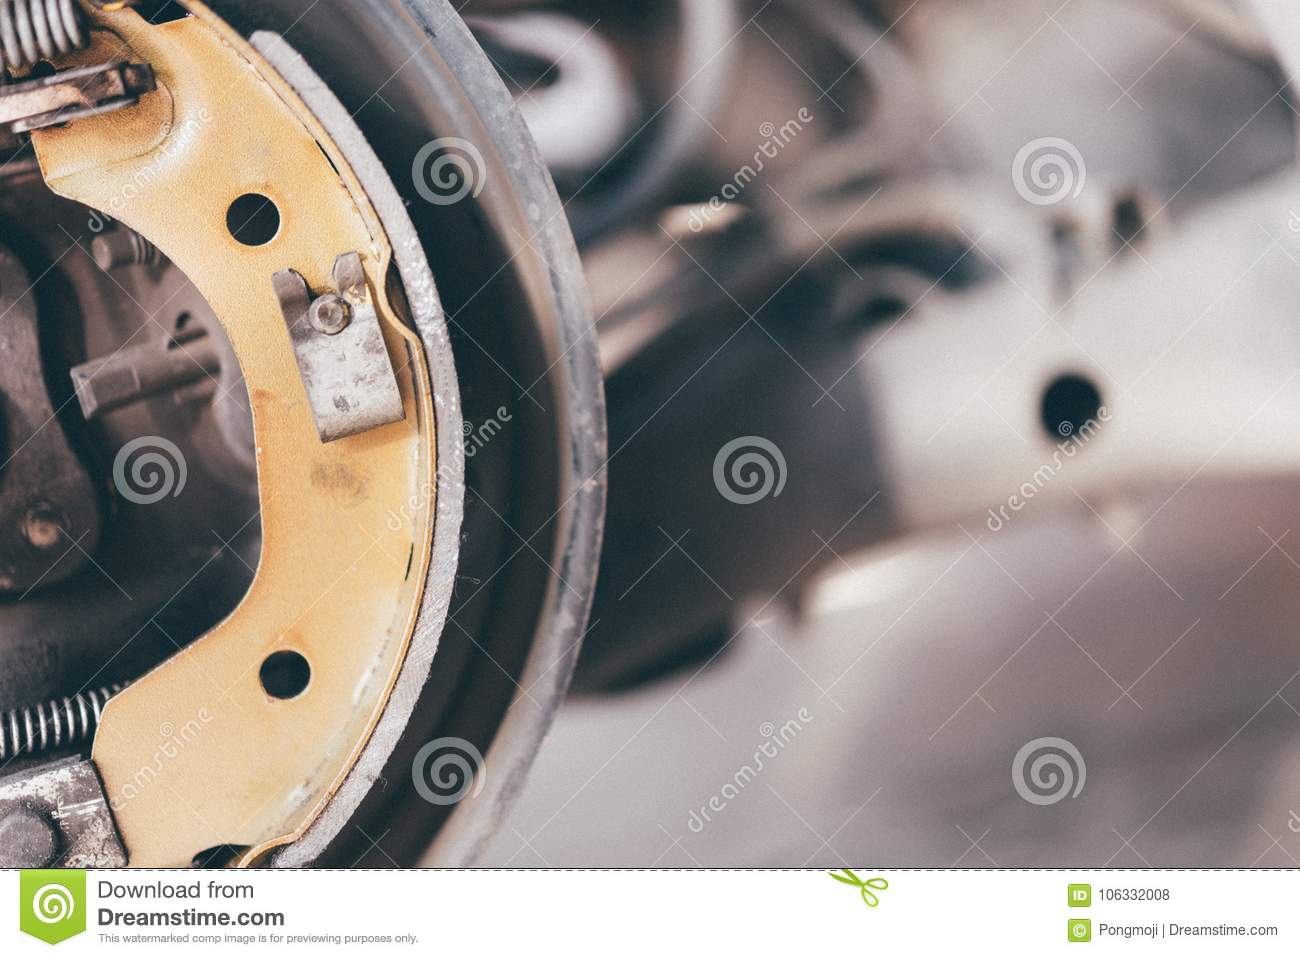 Drum brake and asbestos brake pads it s a part of car use for stop the car  for safety at rear wheel this a new spare part for repair at car garage 6603c18e1